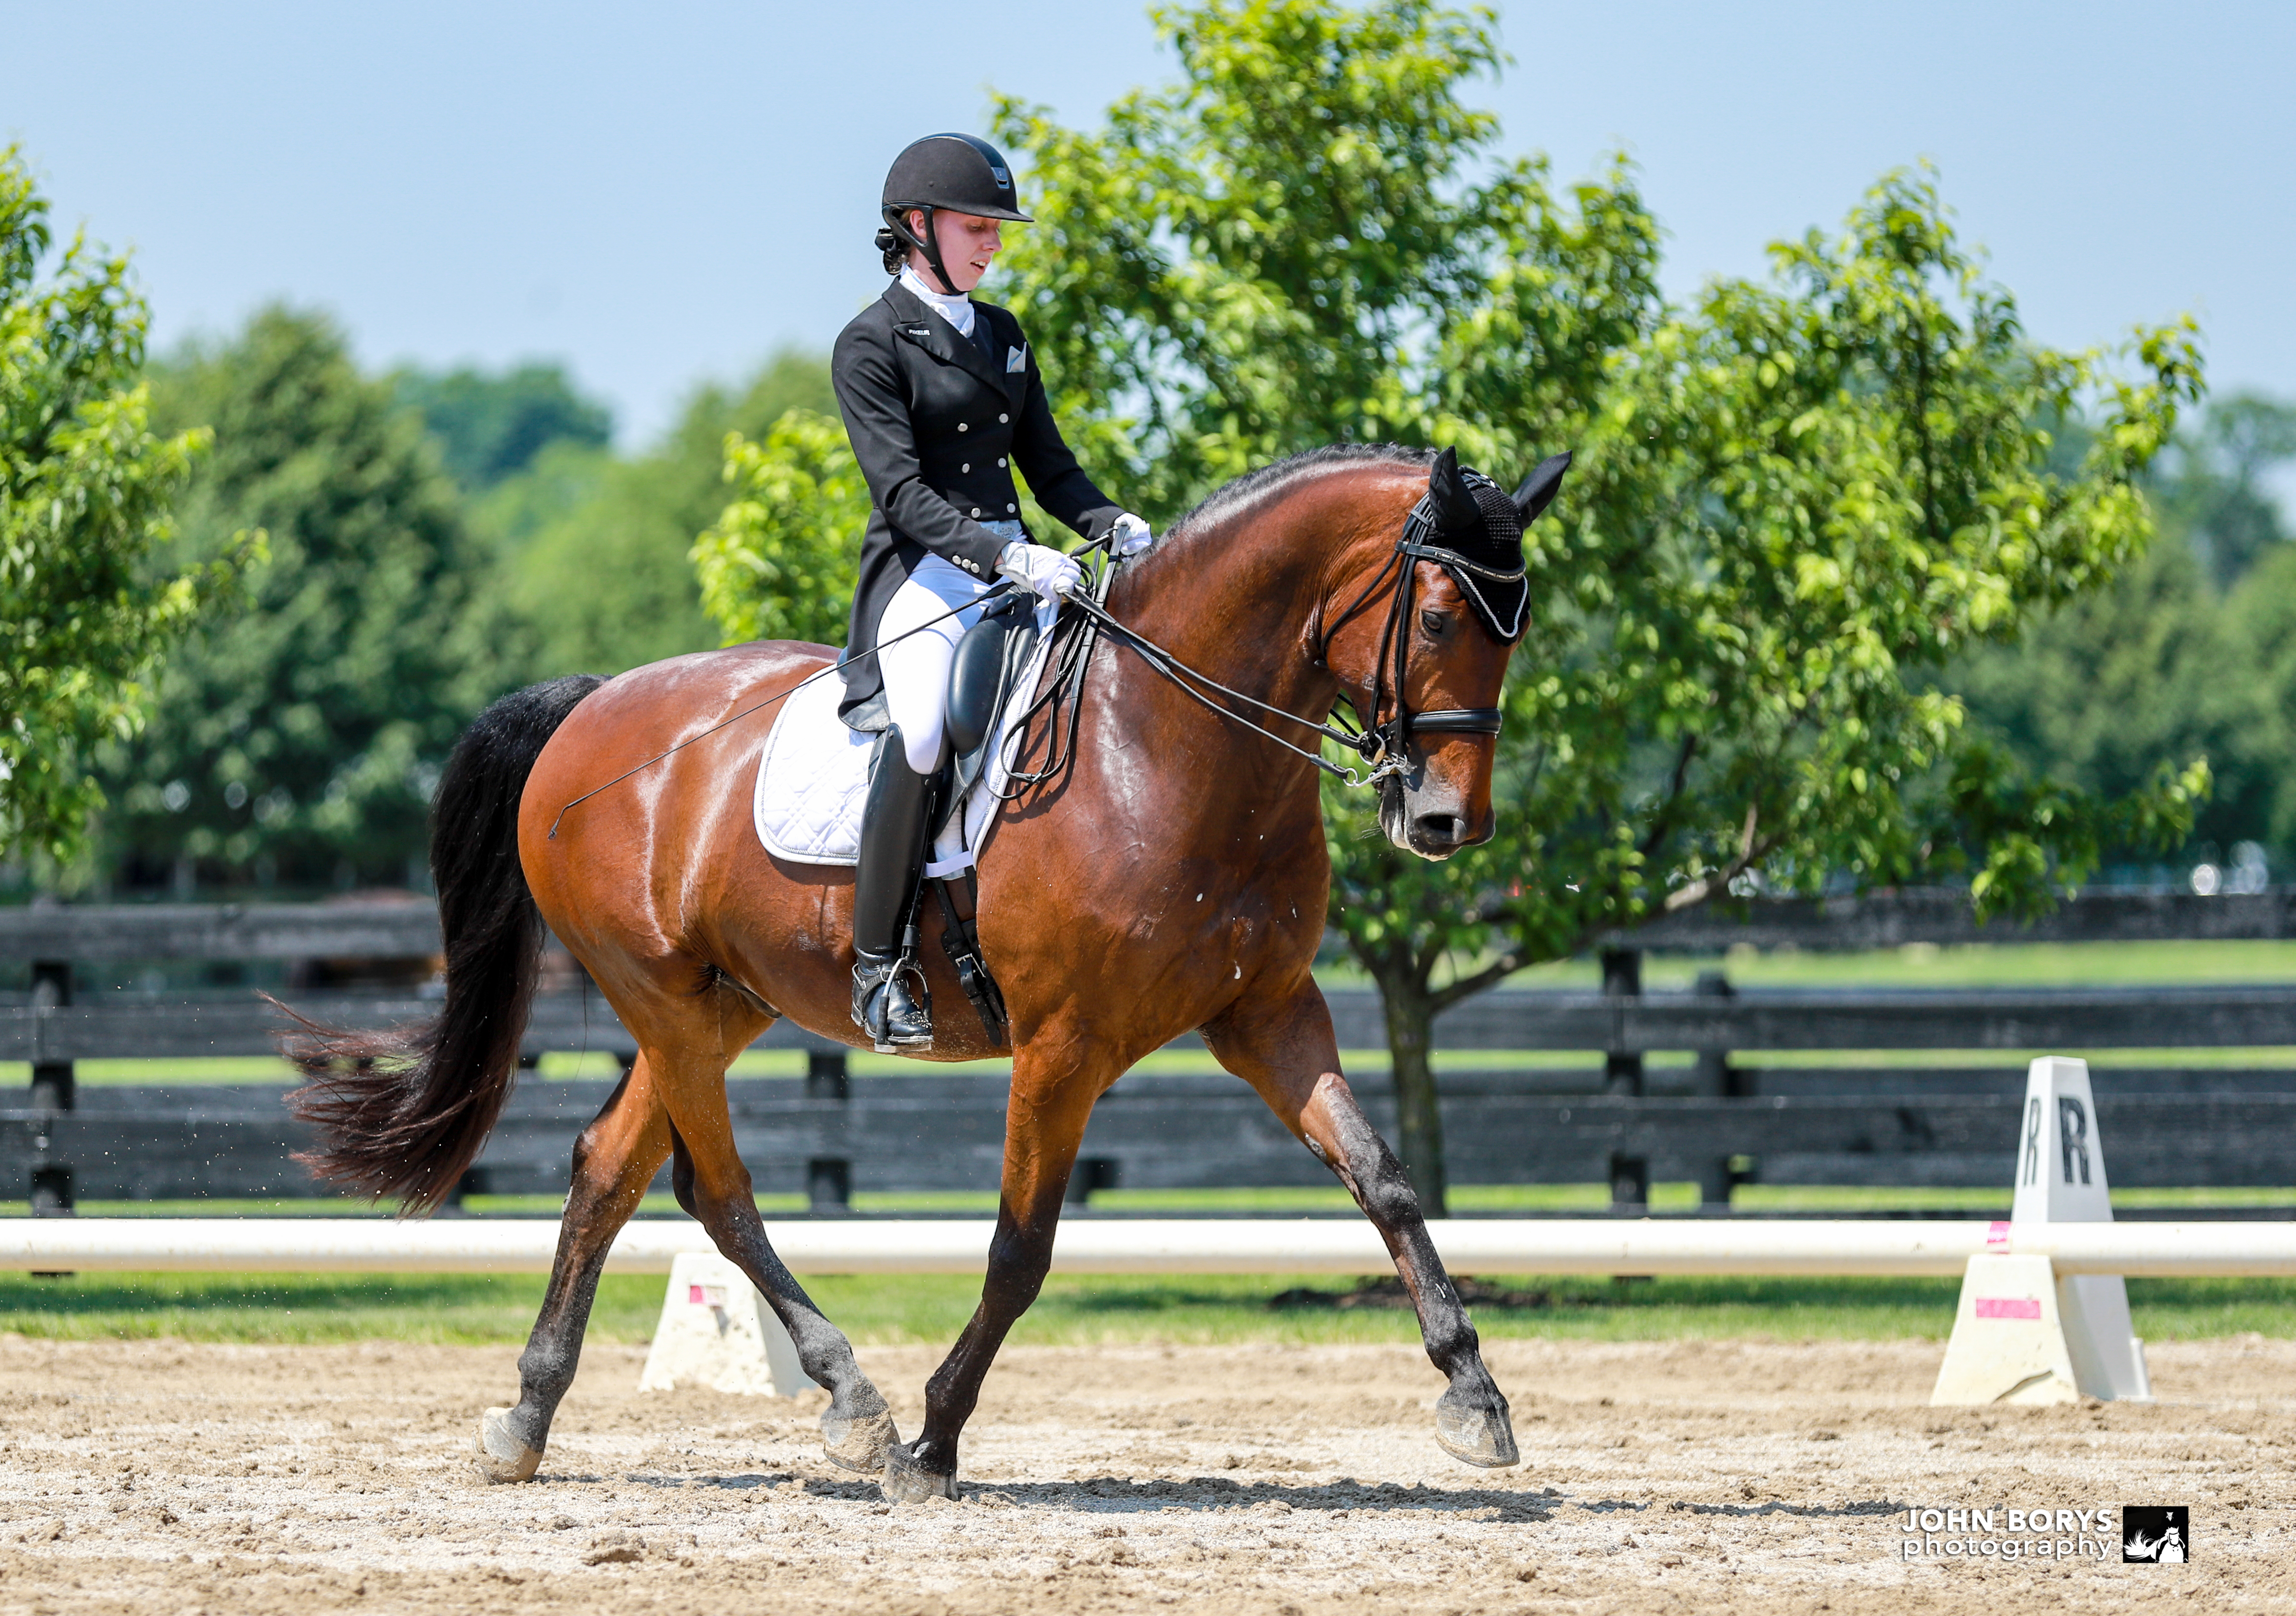 Brianna Zwilling Dressage Lessons